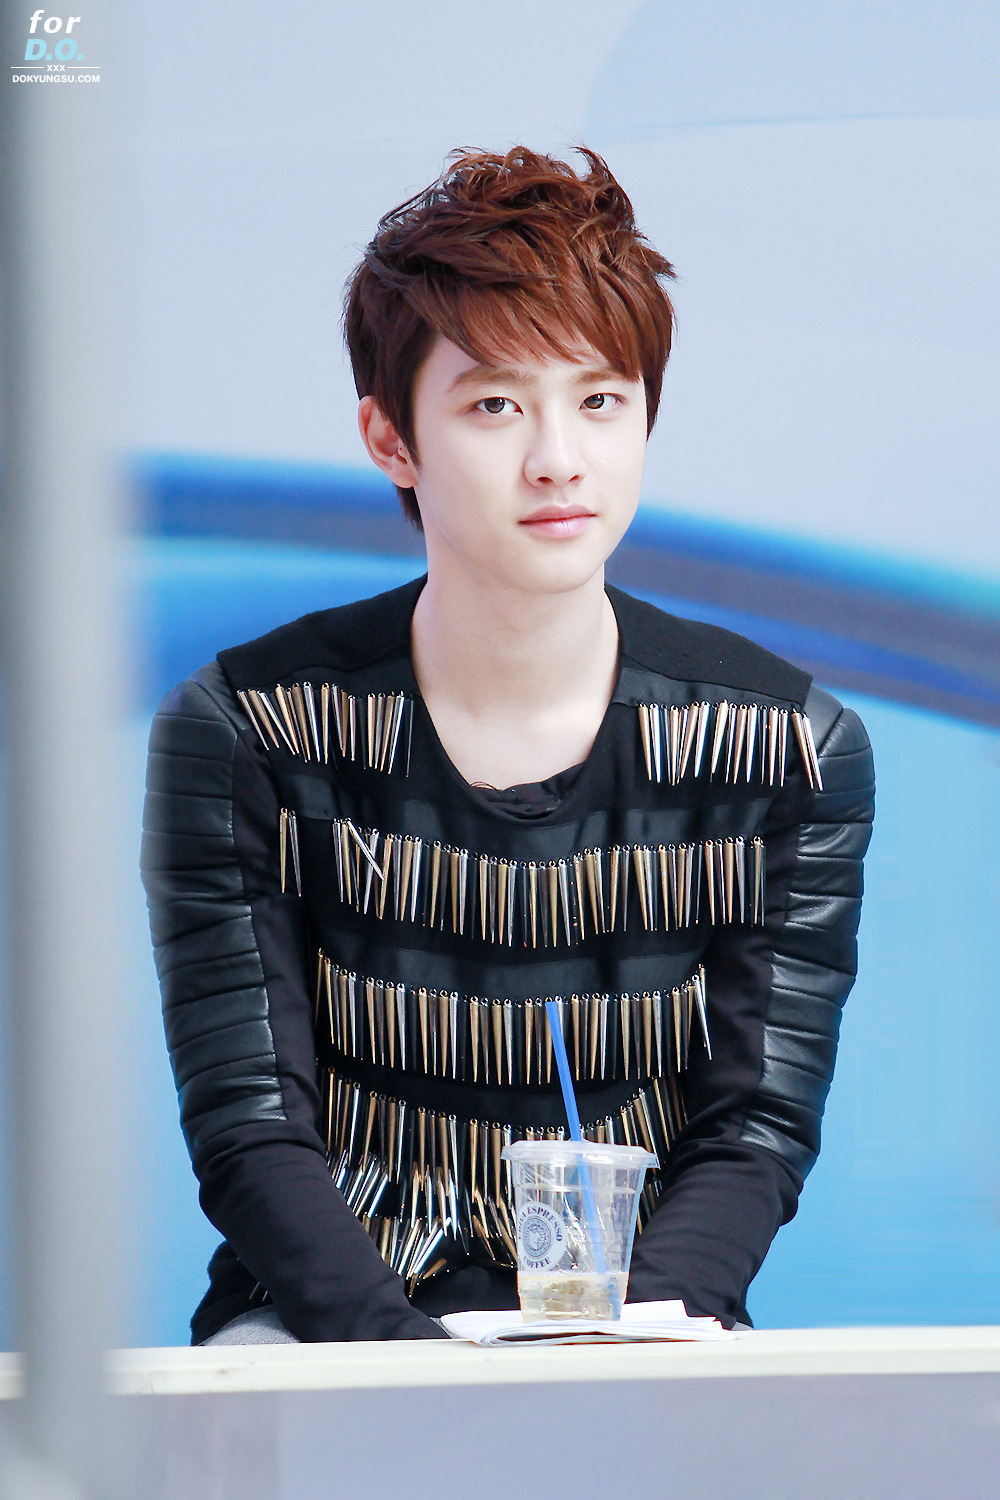 for d.o. | do not edit.